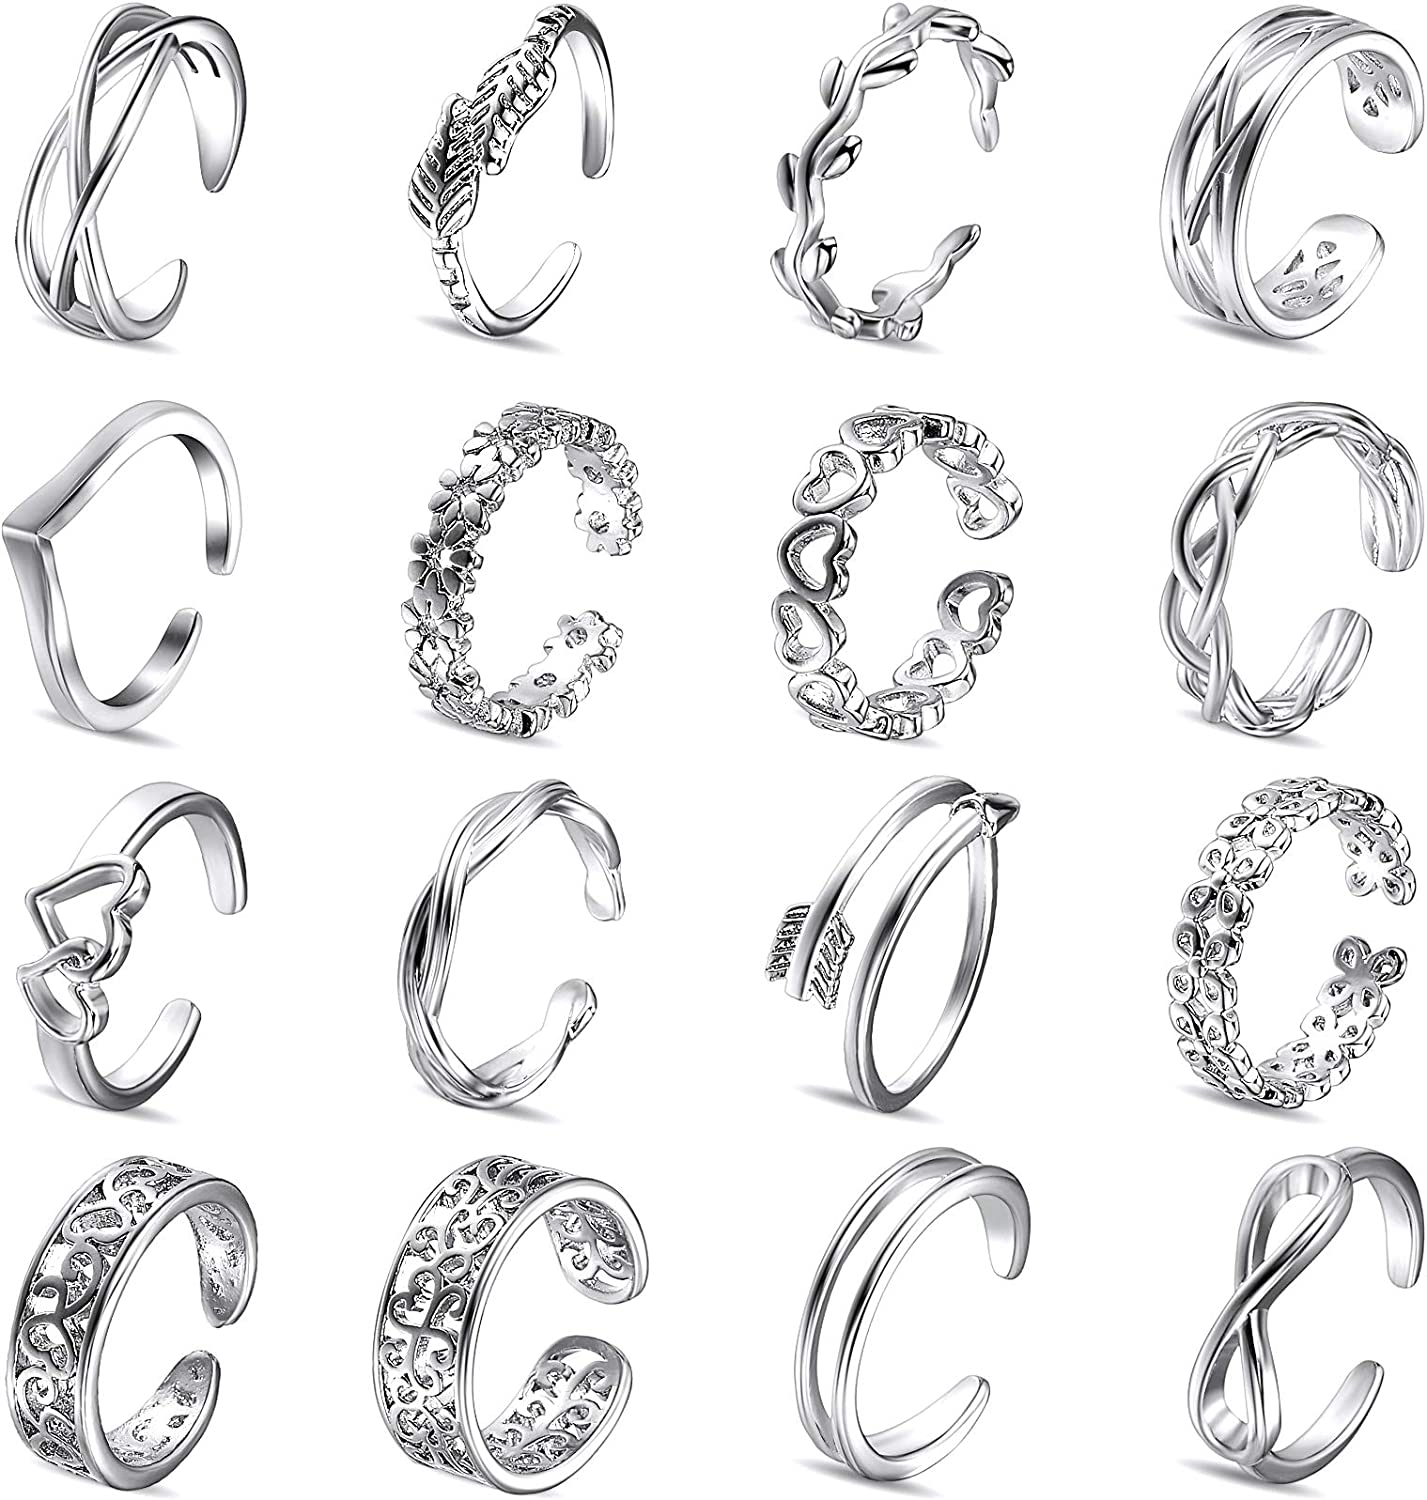 Hicarer 16 Pieces Toe Rings for Women Girls Adjustable Open Toe Ring Summer Beach Flower Arrow Wave Band Tail Ring Set Finger Foot Jewelry